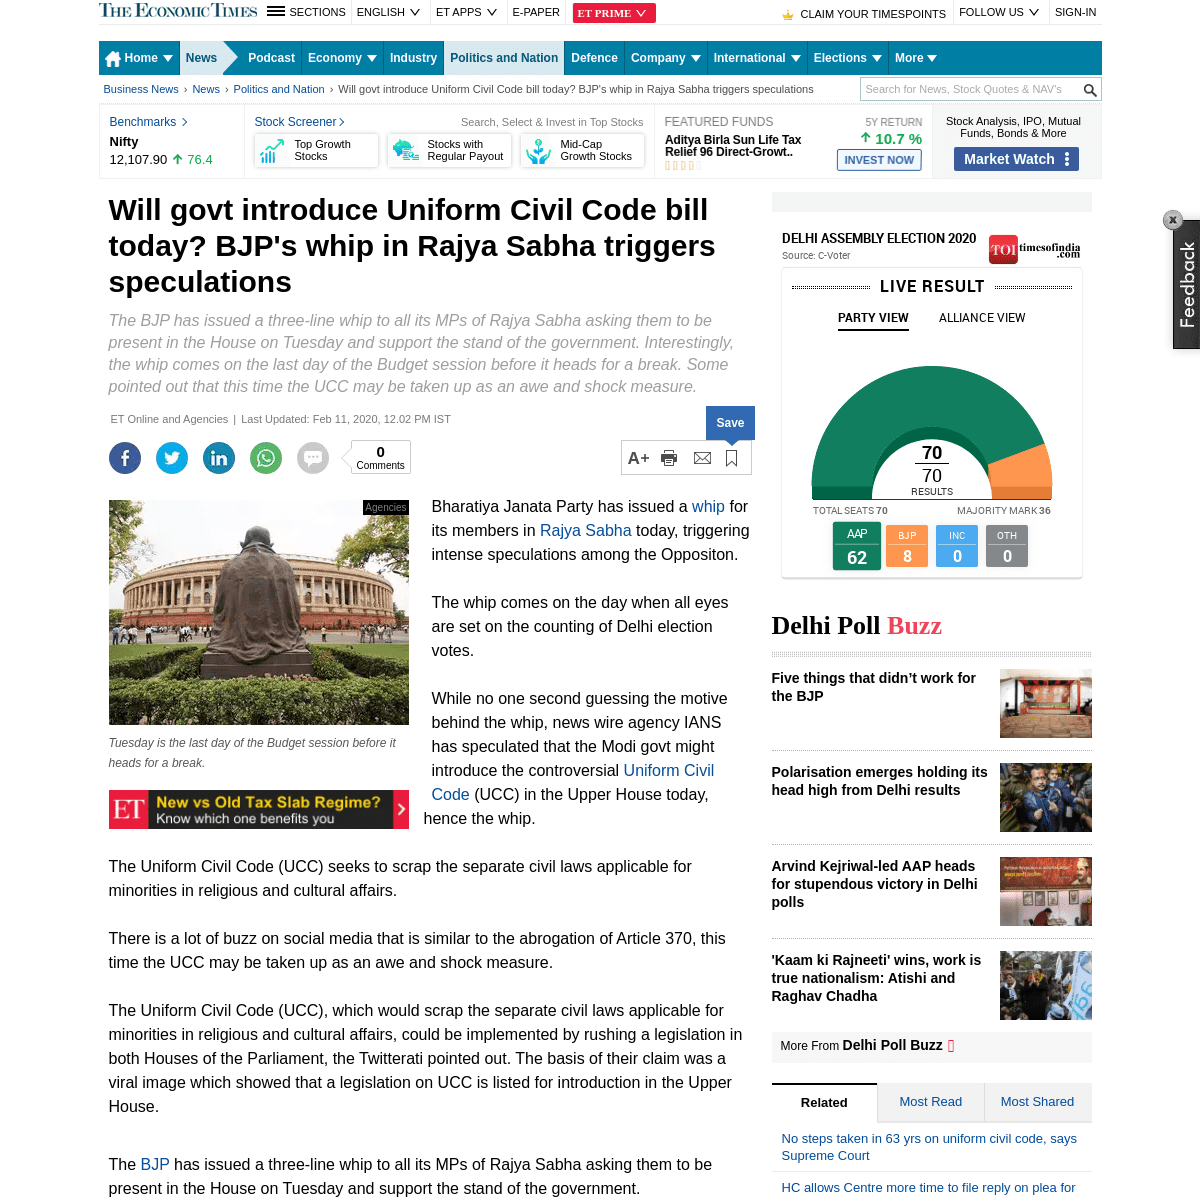 ArchiveBay.com - economictimes.indiatimes.com/news/politics-and-nation/will-bjp-introduce-uniform-civil-code-bill-today-bjps-whip-in-rajya-sabha-triggers-speculations/articleshow/74077230.cms - ucc bill- Will govt introduce Uniform Civil Code bill today- BJP's whip in Rajya Sabha triggers speculations - The Economic Time